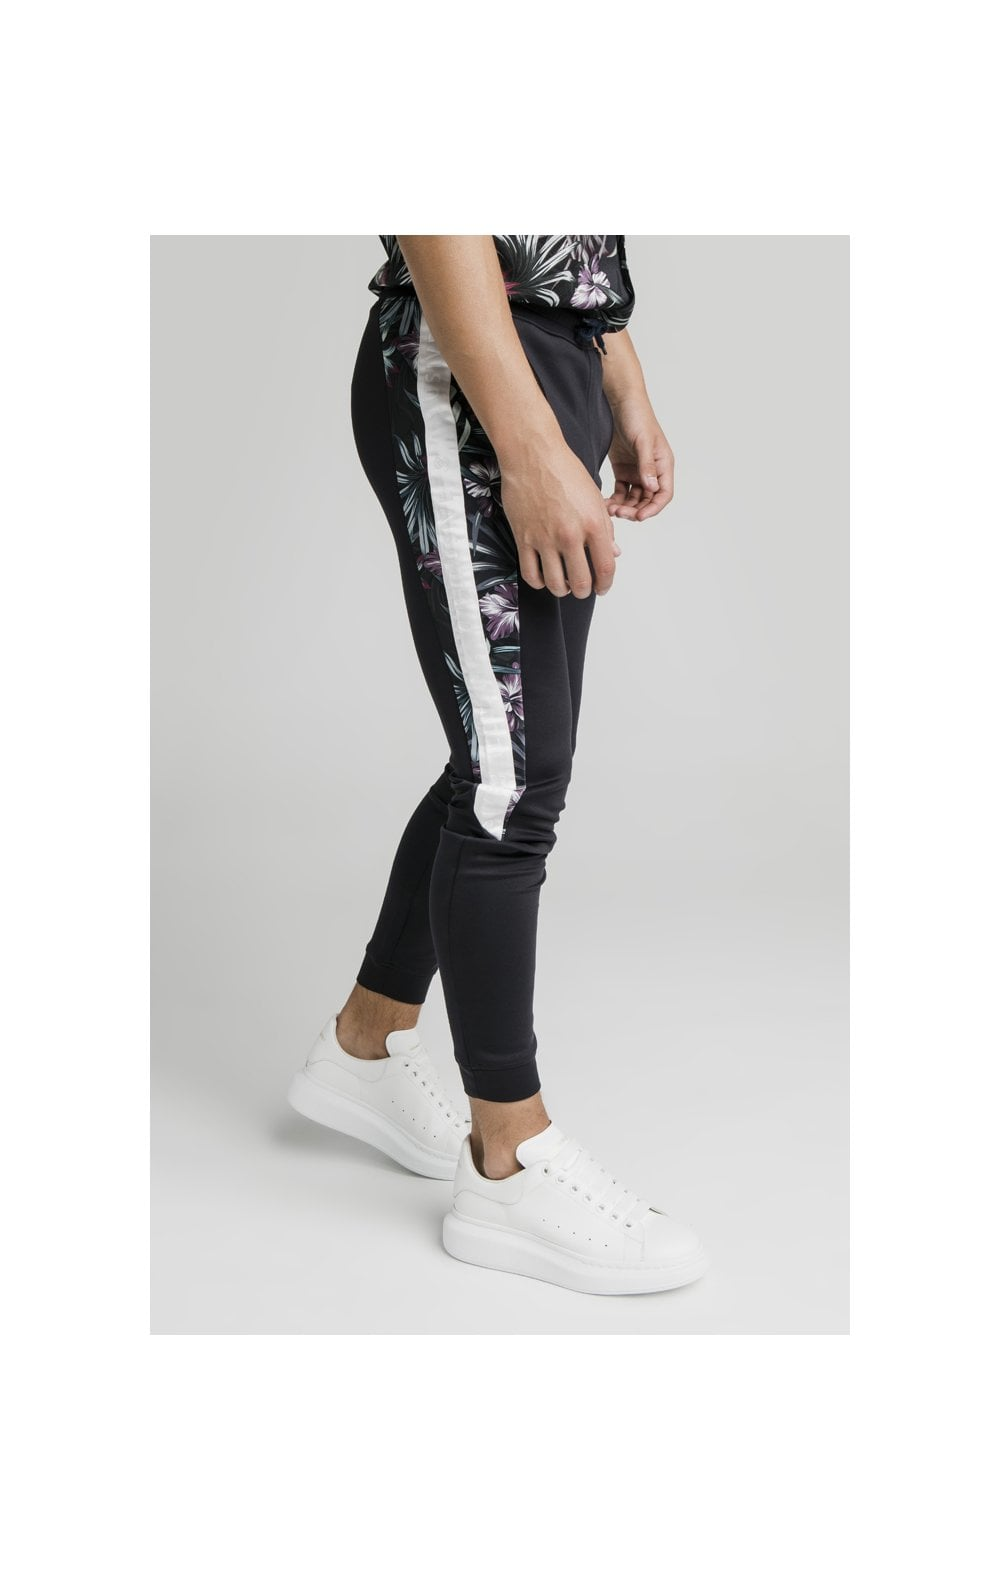 Load image into Gallery viewer, Illusive London Dark Tropical Tape Pants - Navy (1)